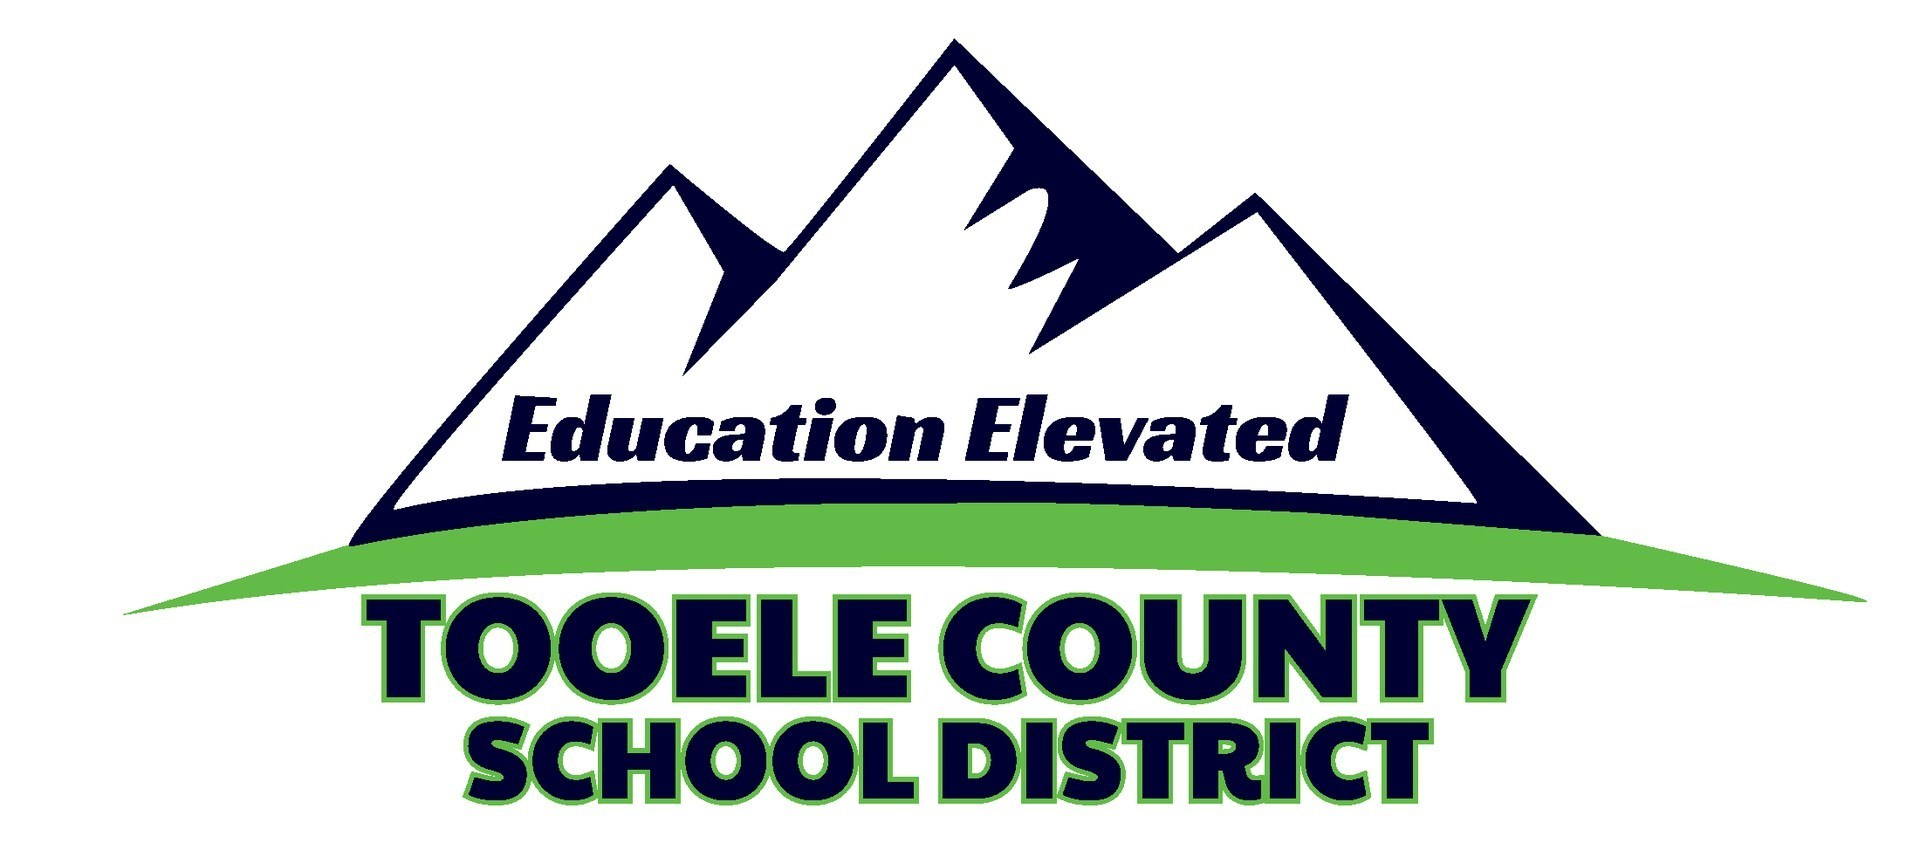 Tooele County School District